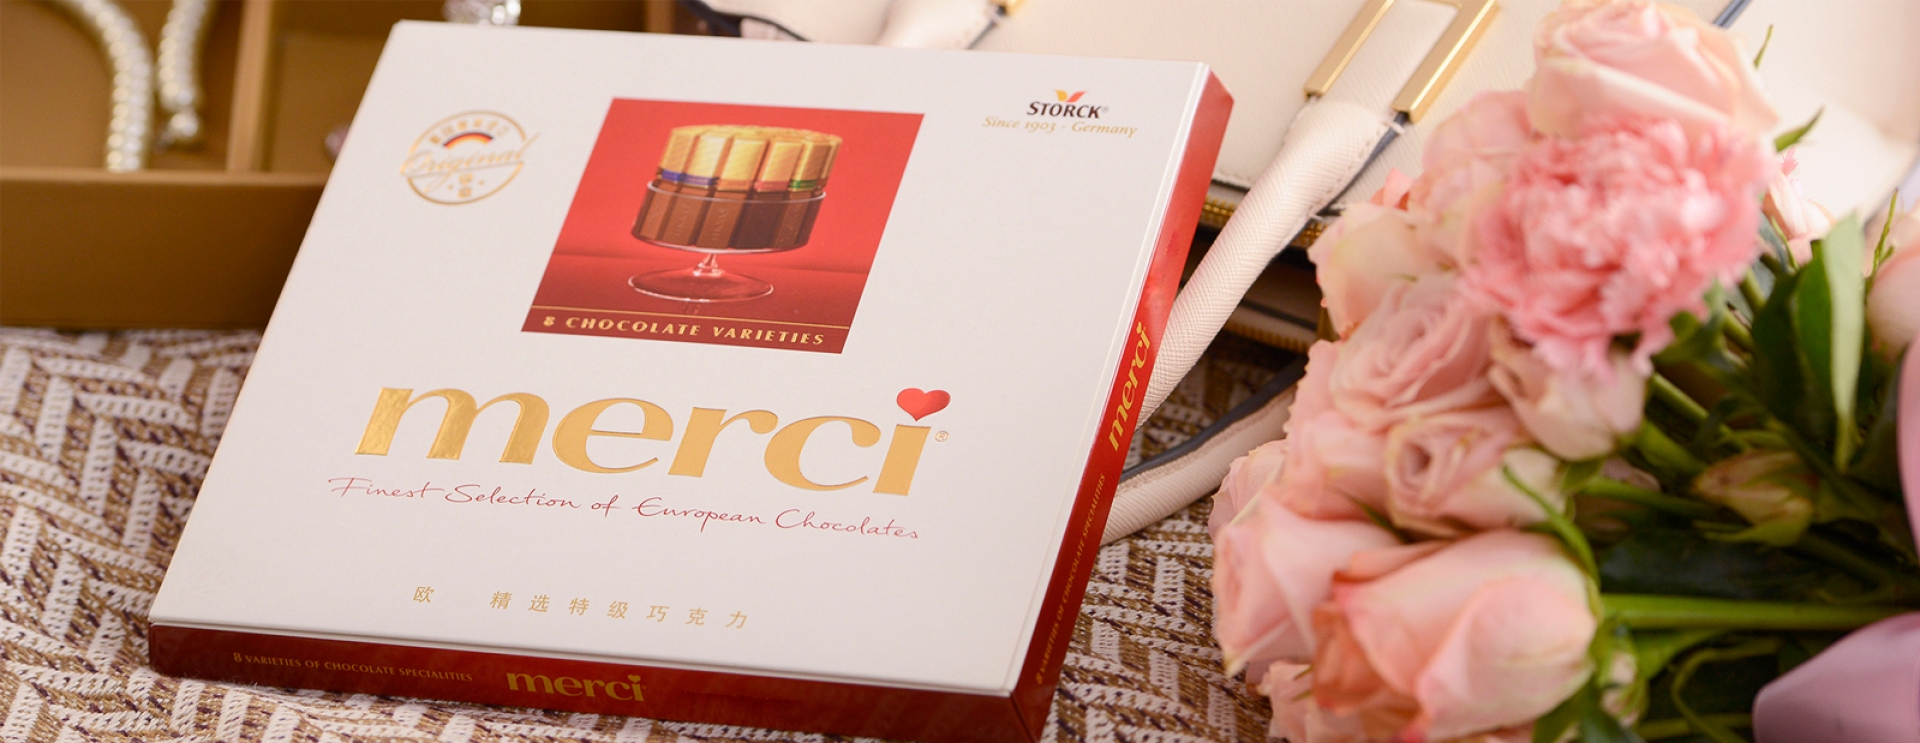 Launching Germany's Largest Chocolate Brand in China